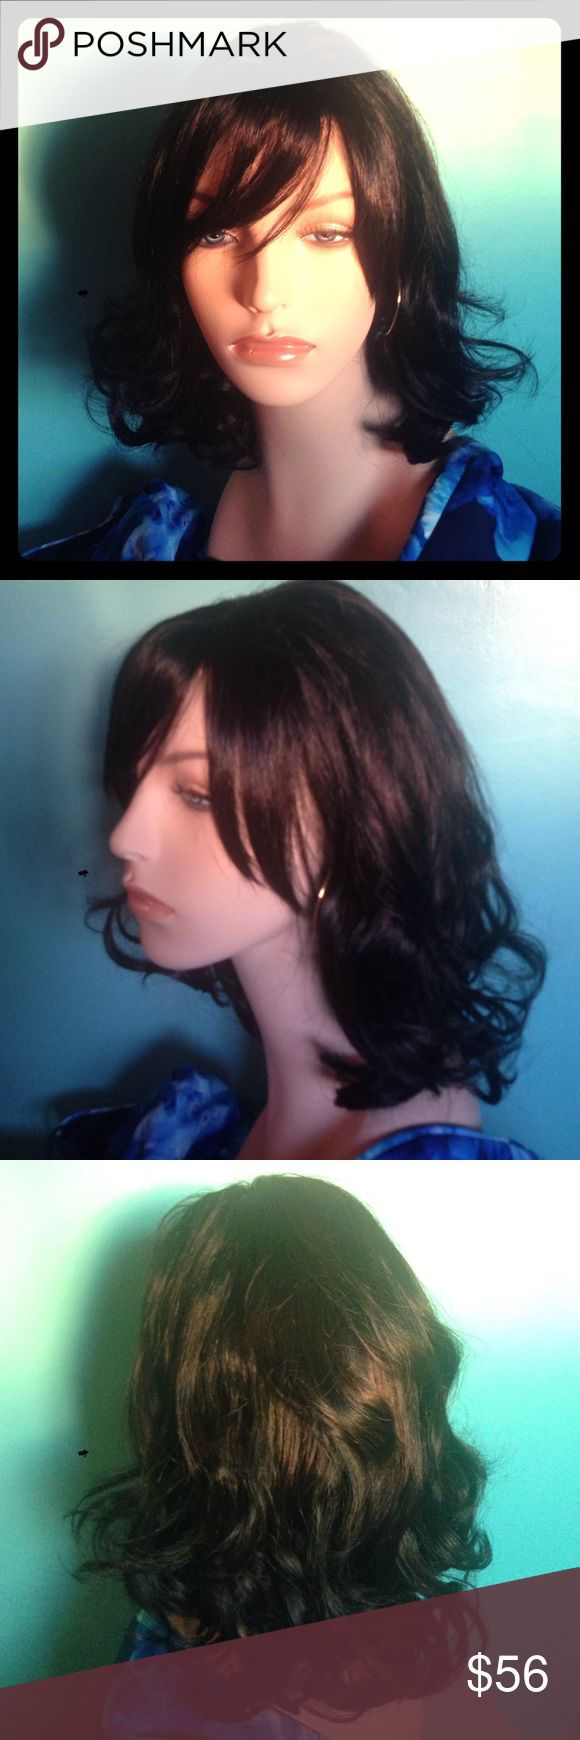 Brand new Brunette wig with red highlights New in package. Style is Serafina.dark brunette with dark red highlights. Accessories